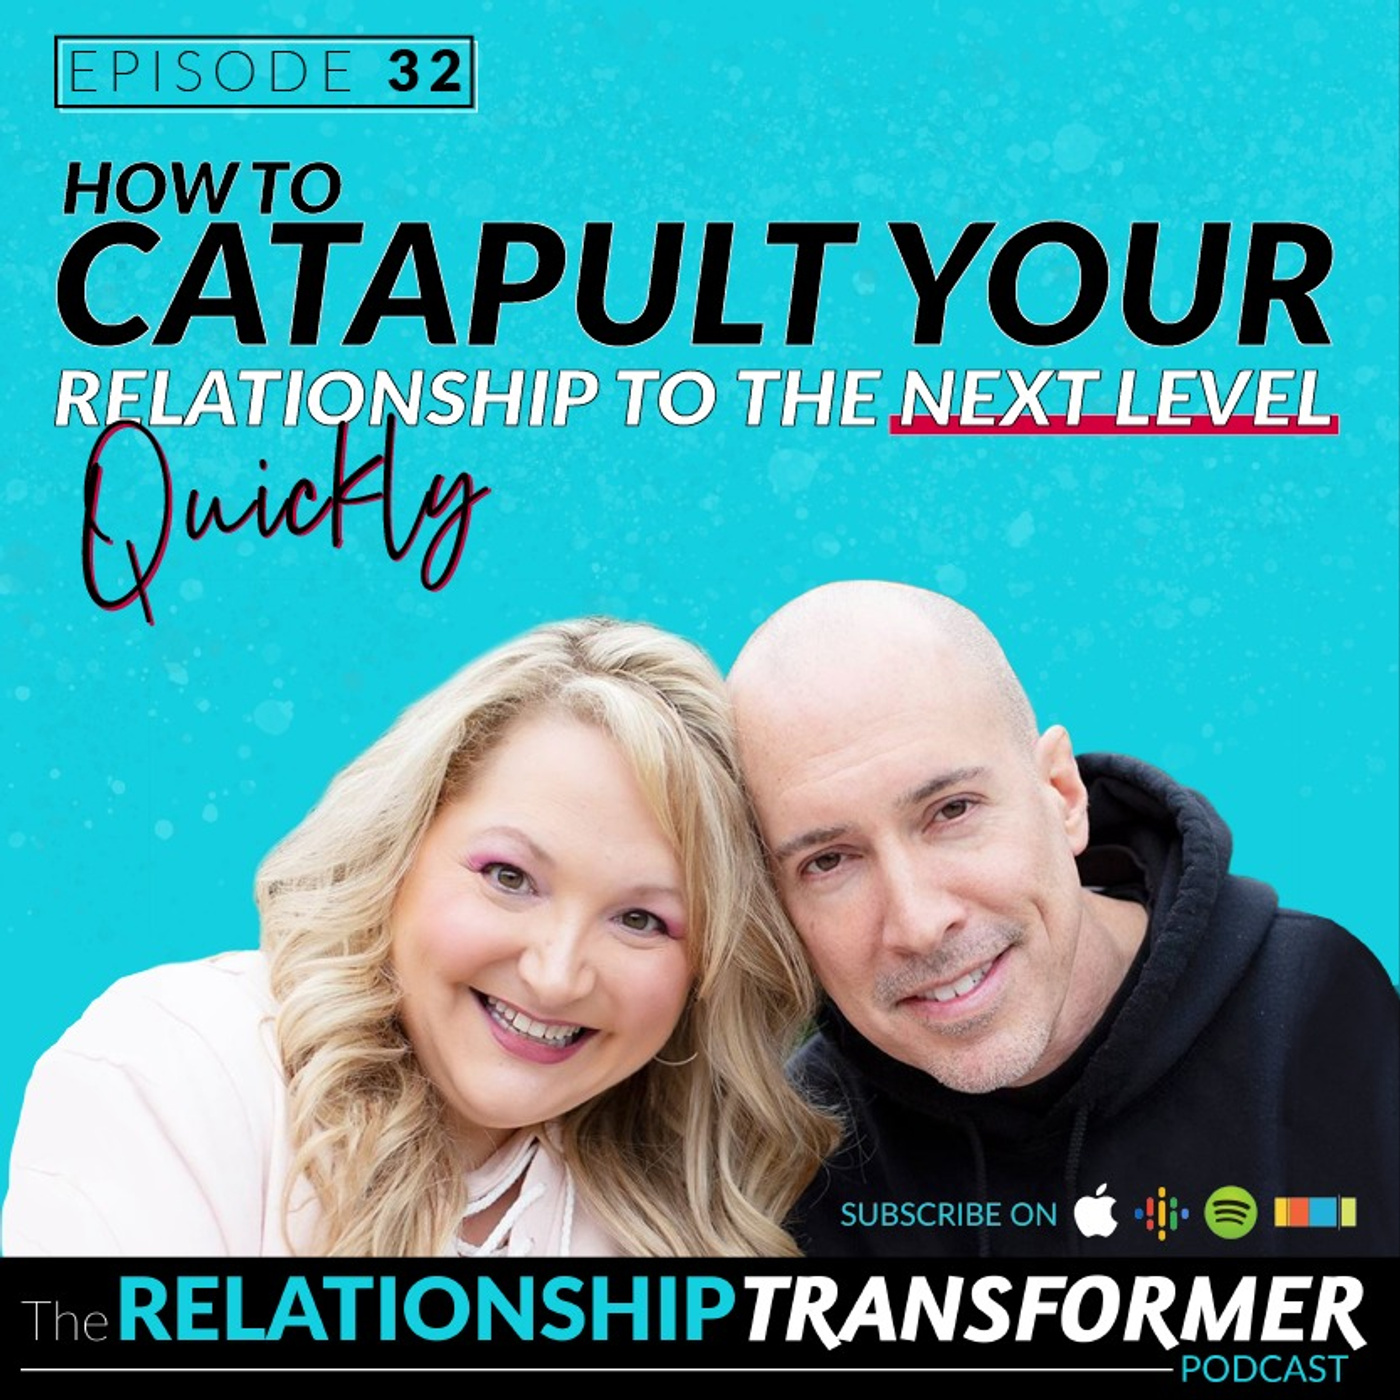 Relationship Transformers - 32: How To Catapult Your Relationship To The Next Level QUICKLY